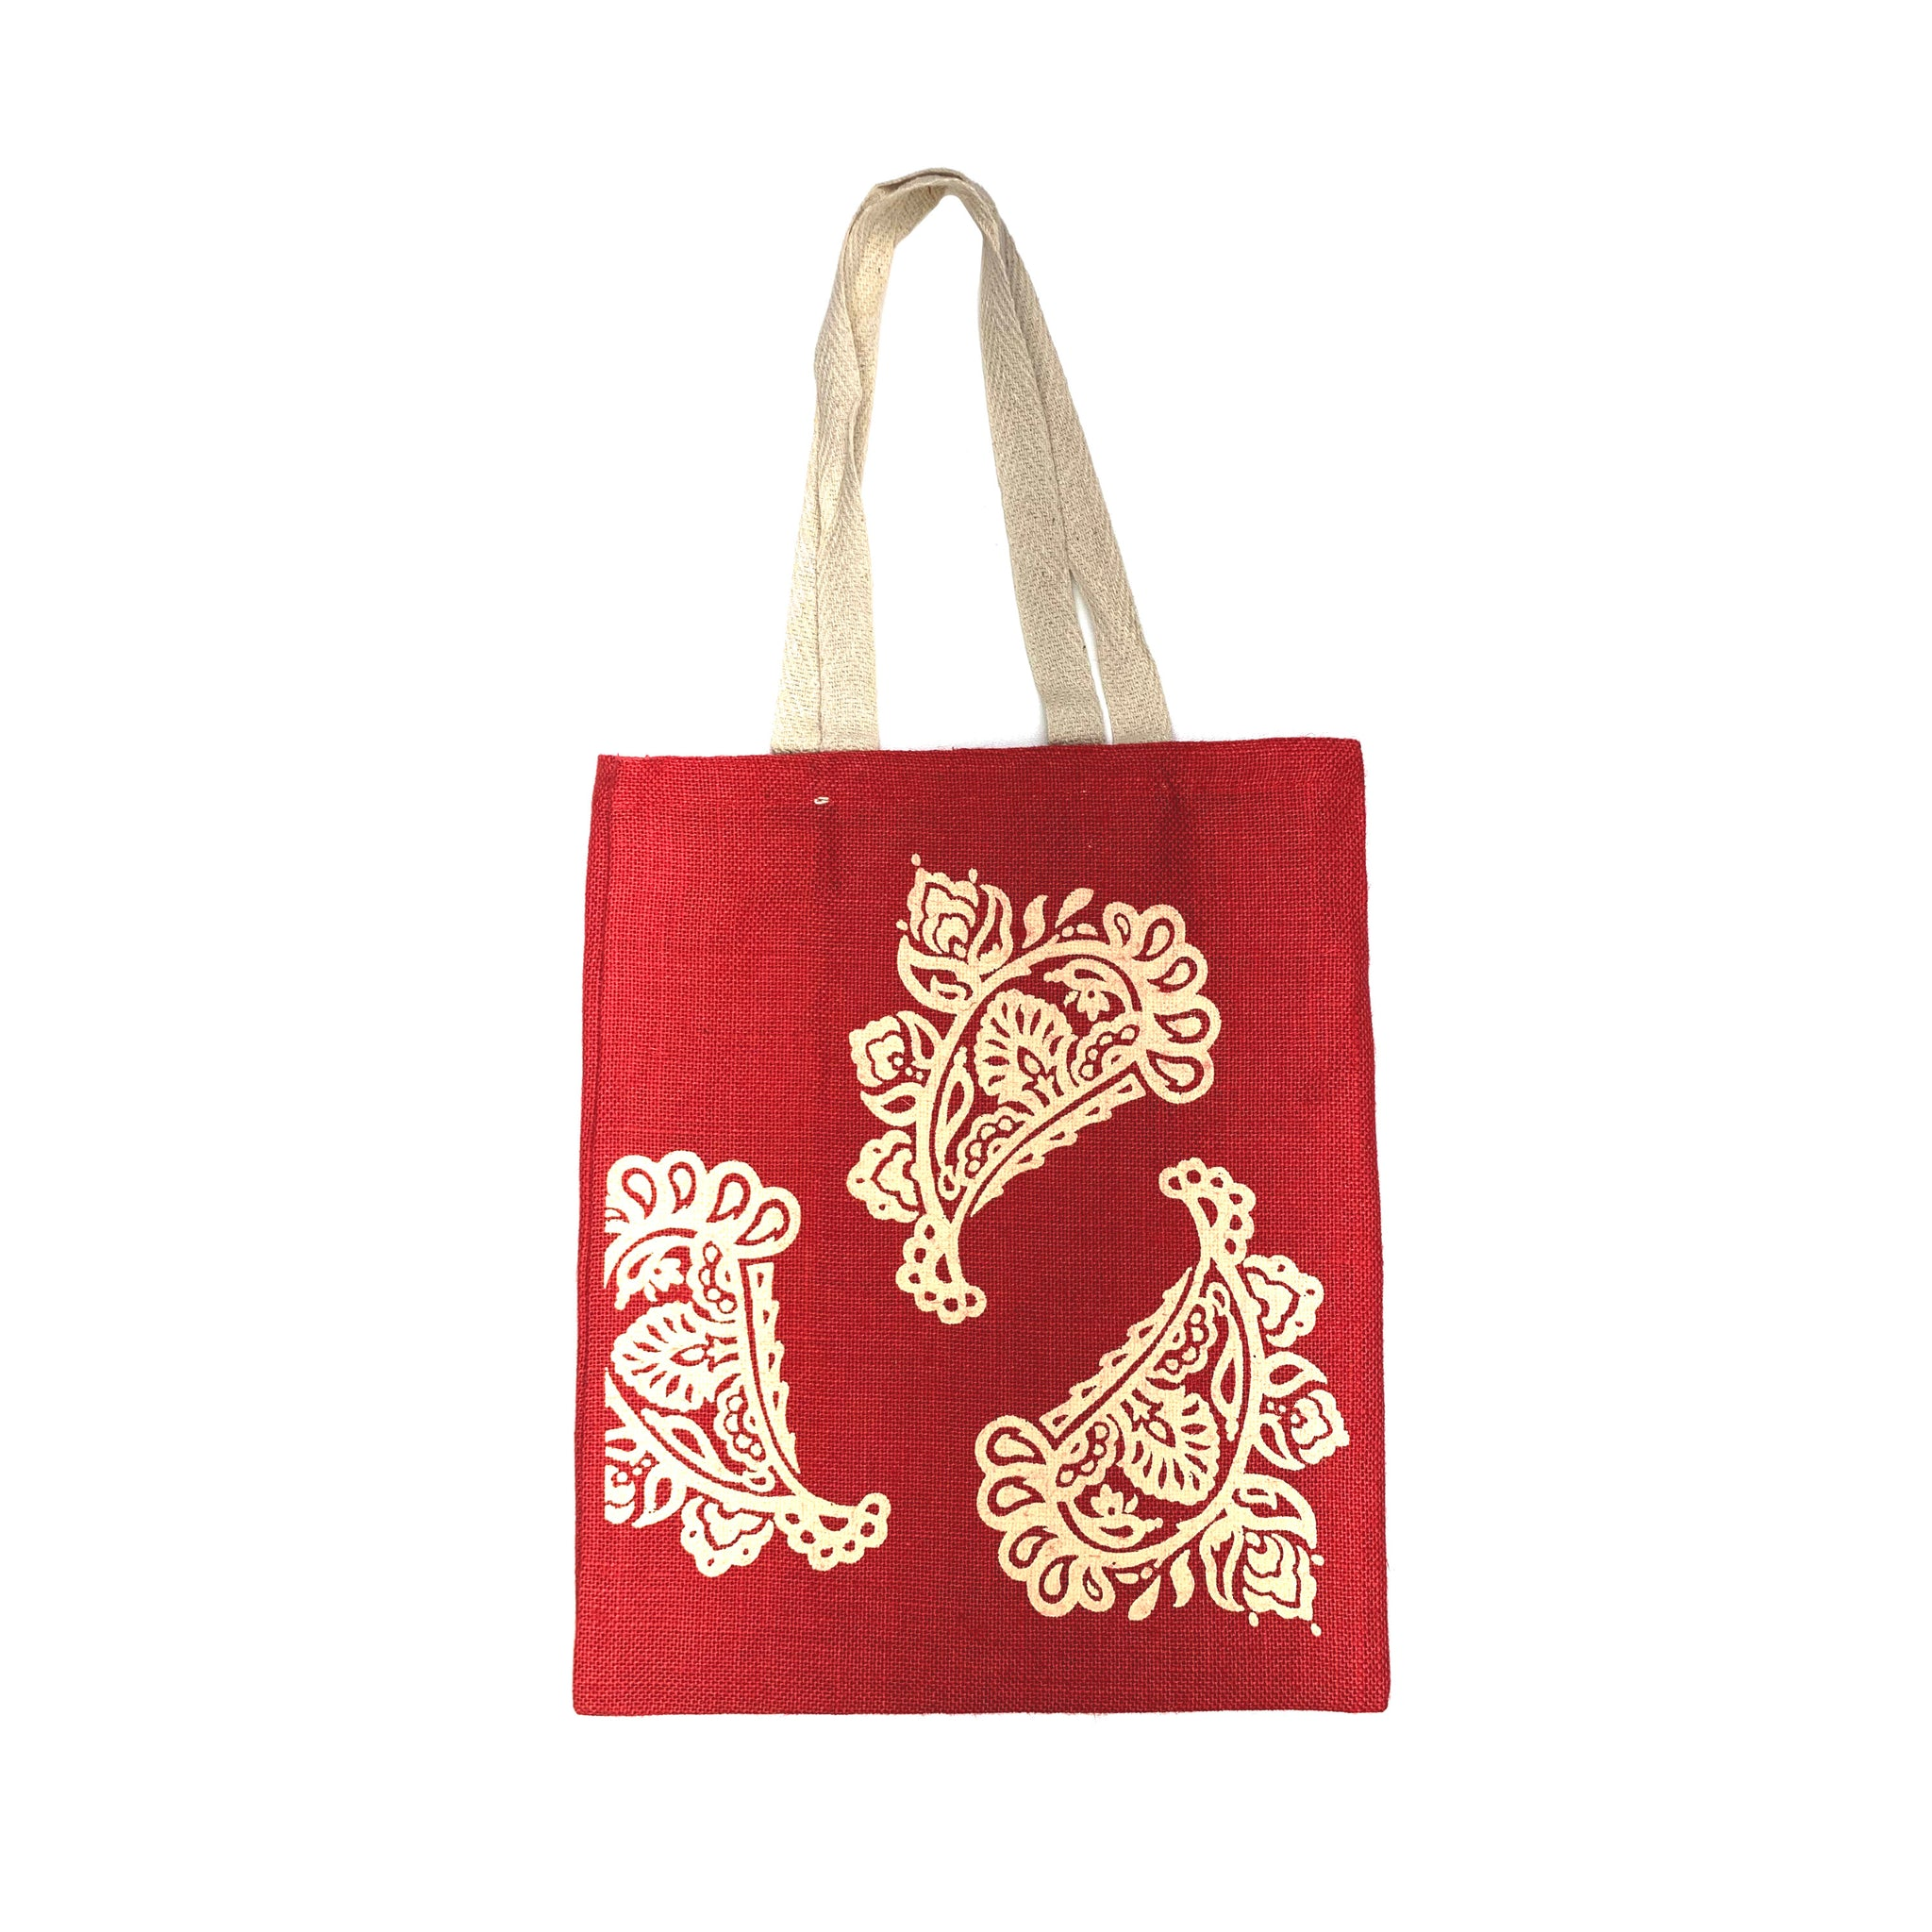 Burlap Tote in Red